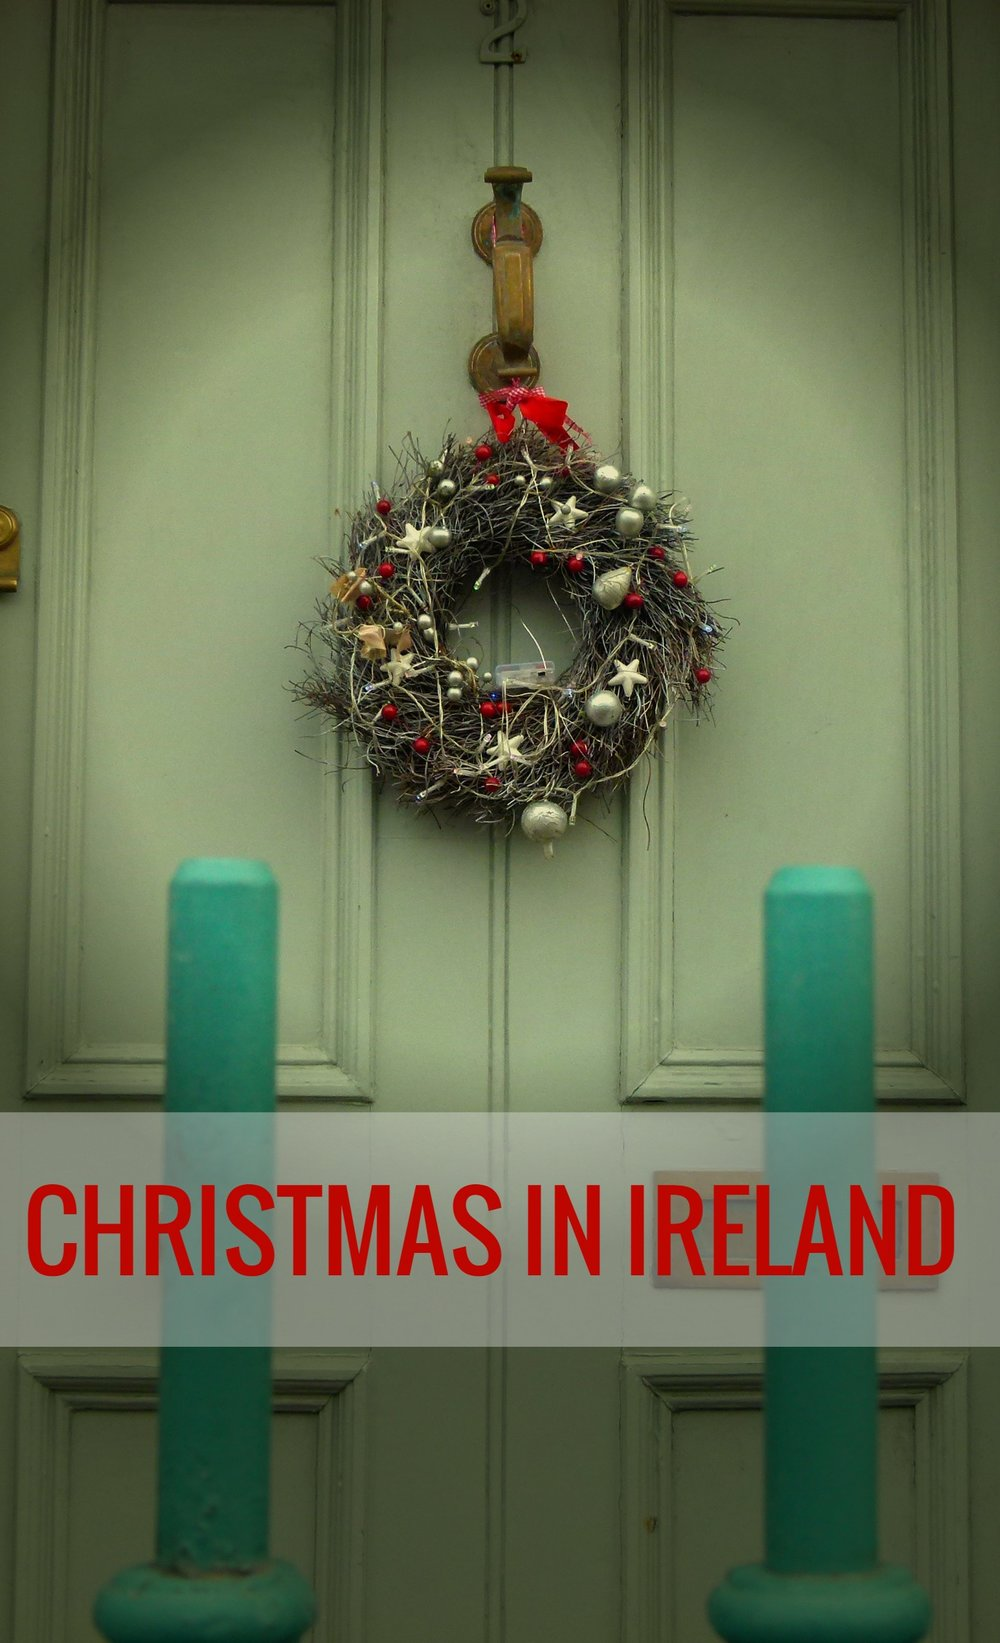 Christmas in Ireland 2.jpg